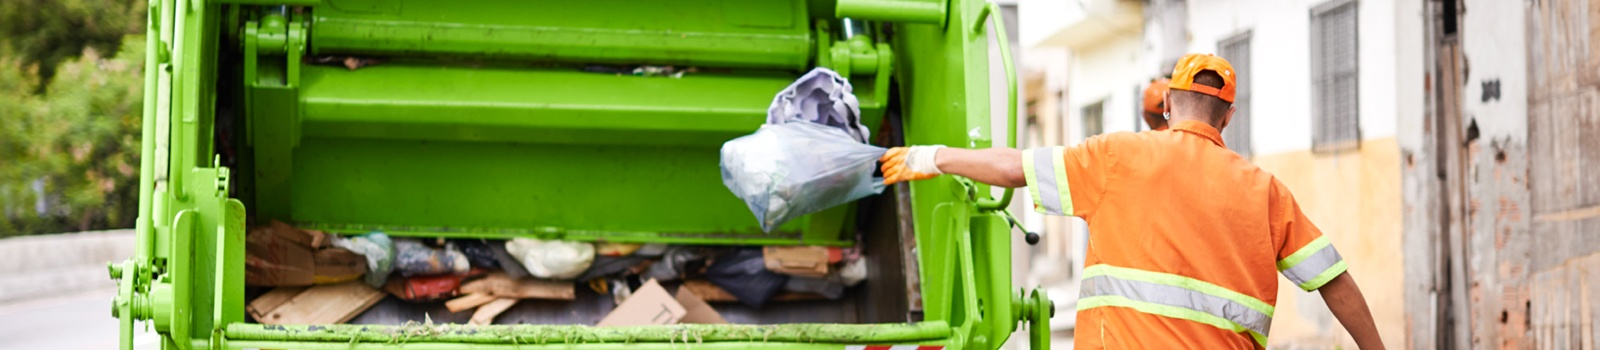 Equipment Financing for Solid Waste Companies